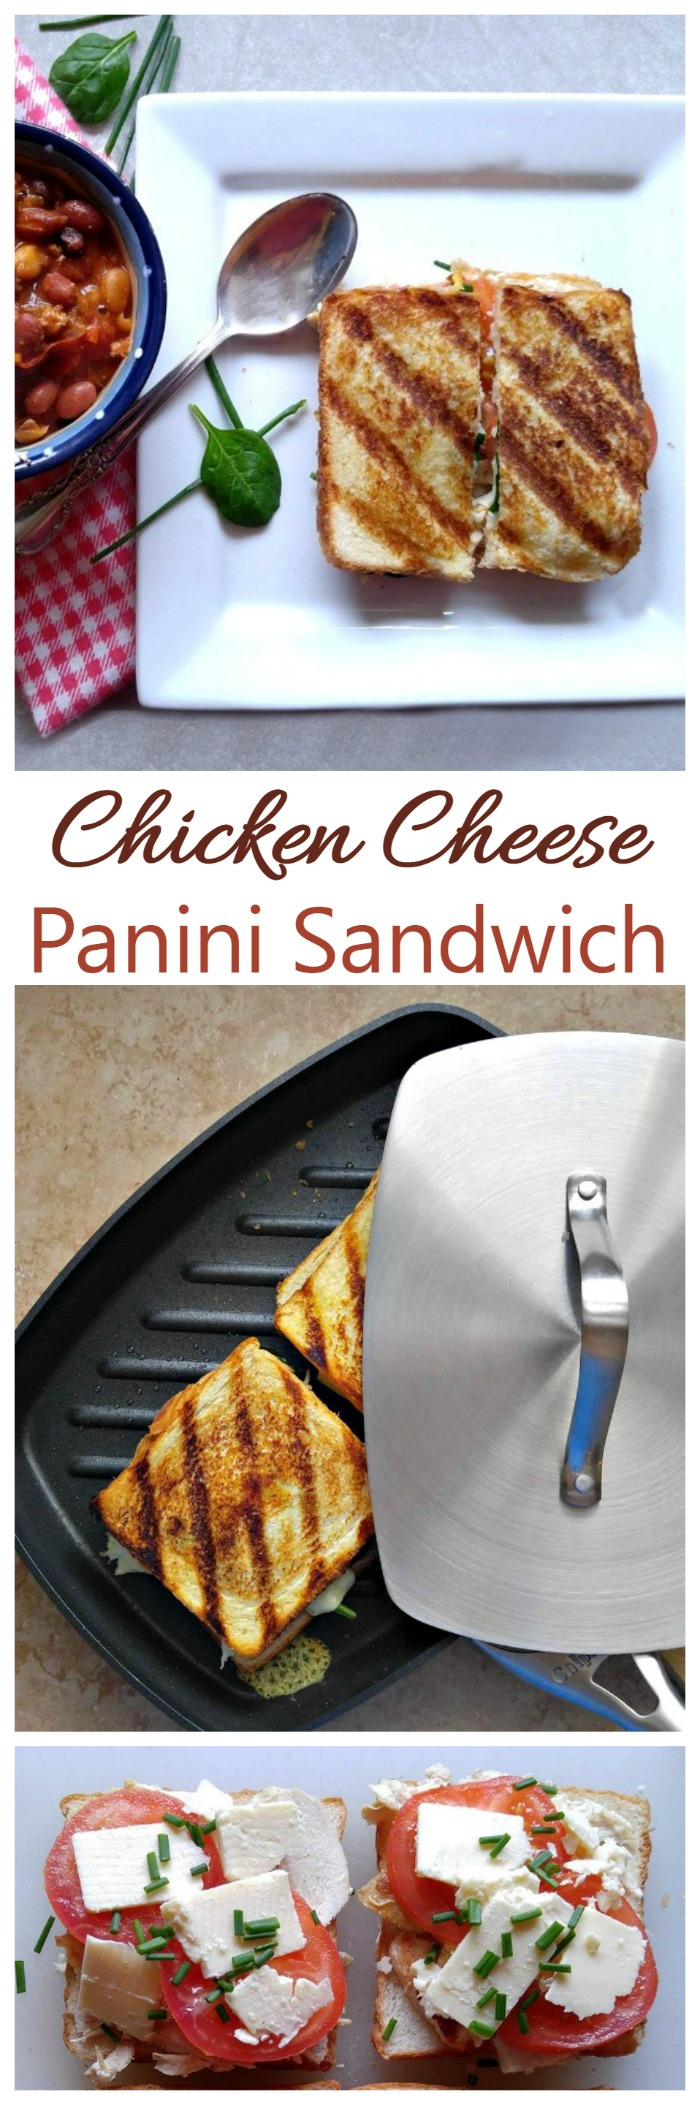 This chicken cheese spinach panini takes a chicken sandwich to a whole new level.  It is easy to make and tastes delicious.